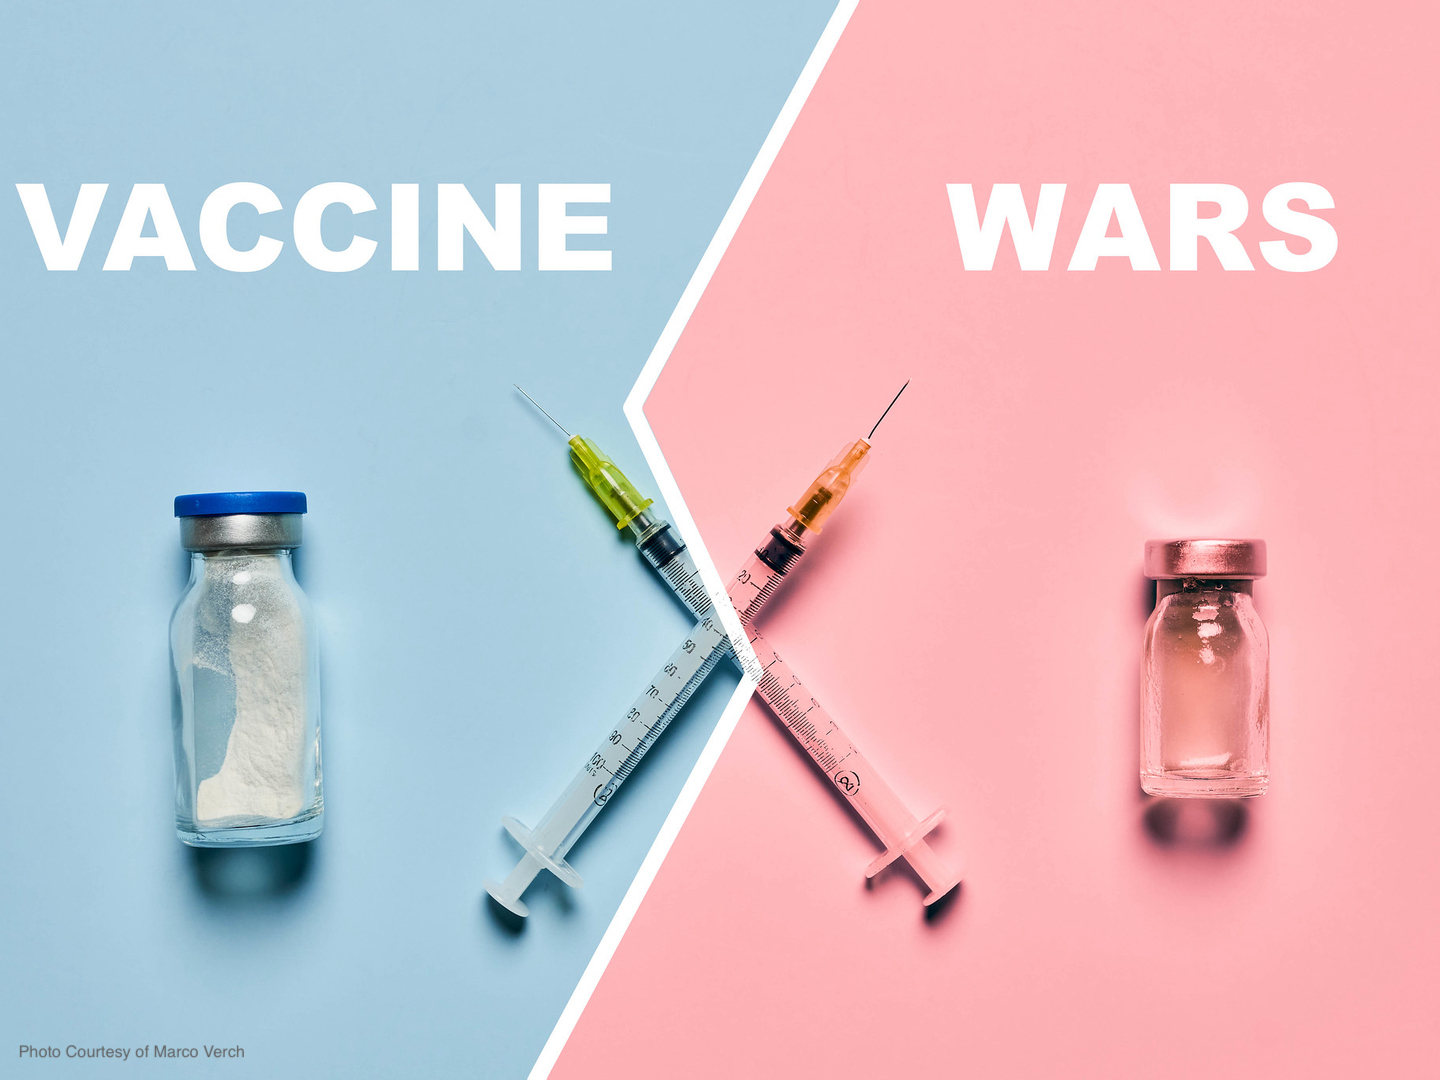 Vaccine wars graphic with crossed syringes